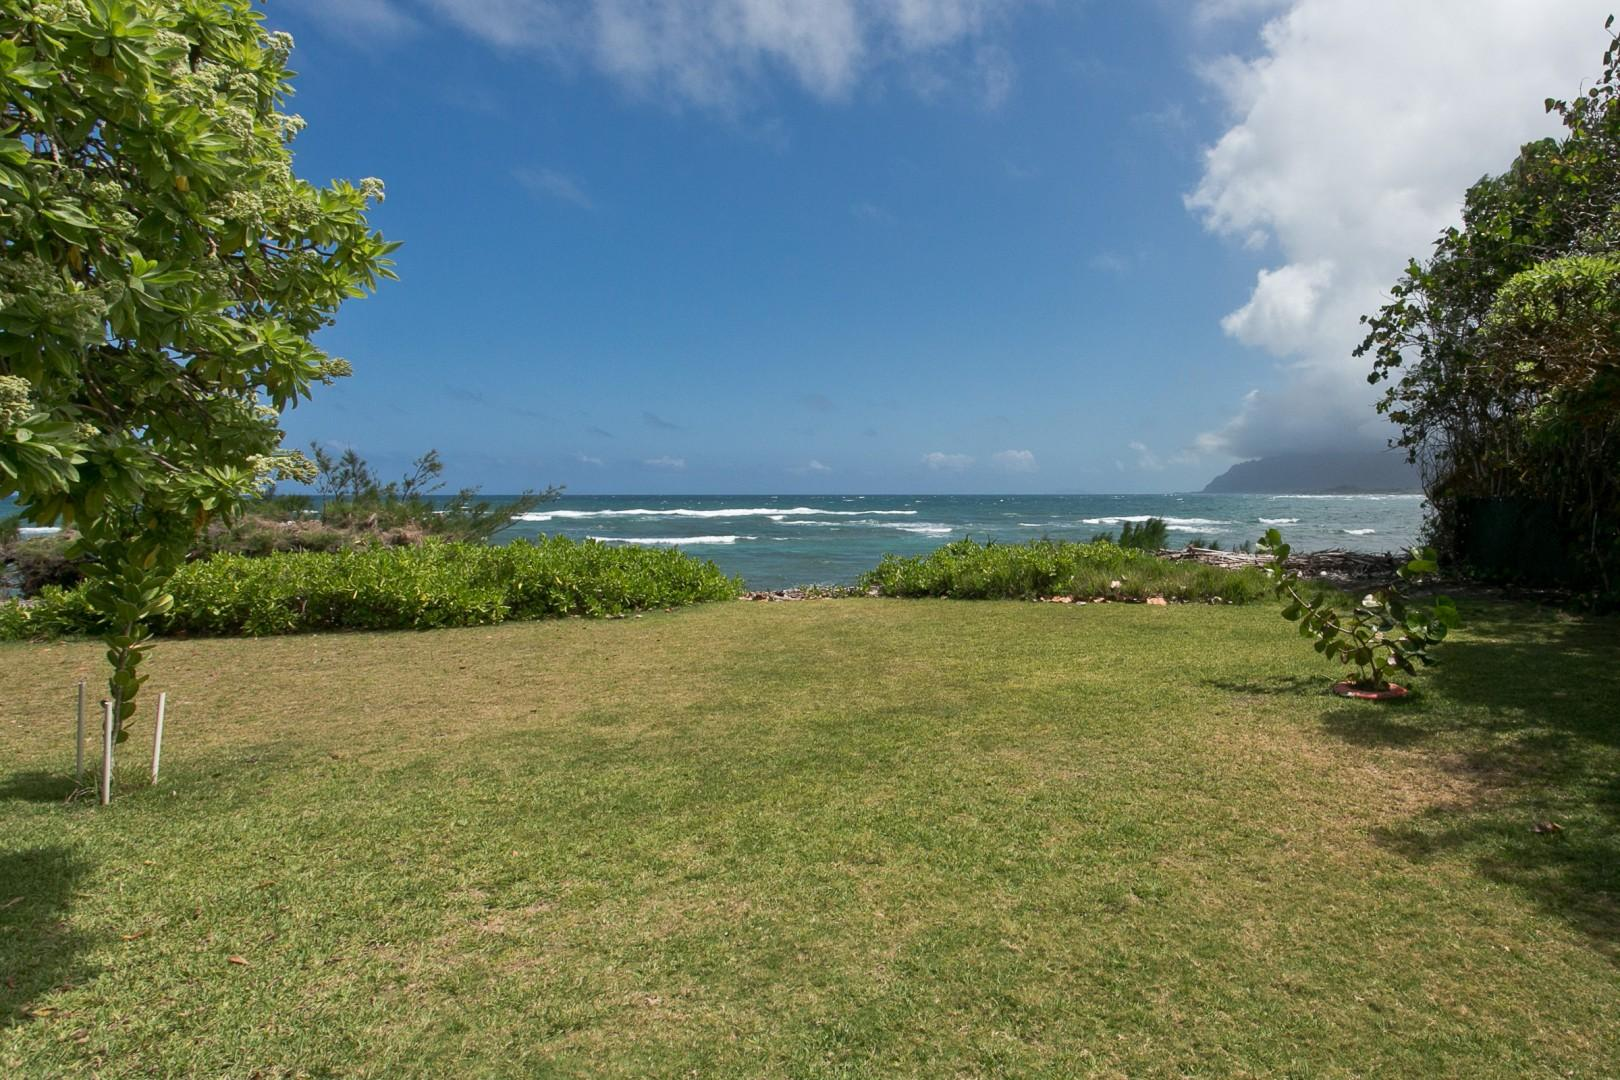 Grand back yard with private beach access (seasonal, due to high tides).